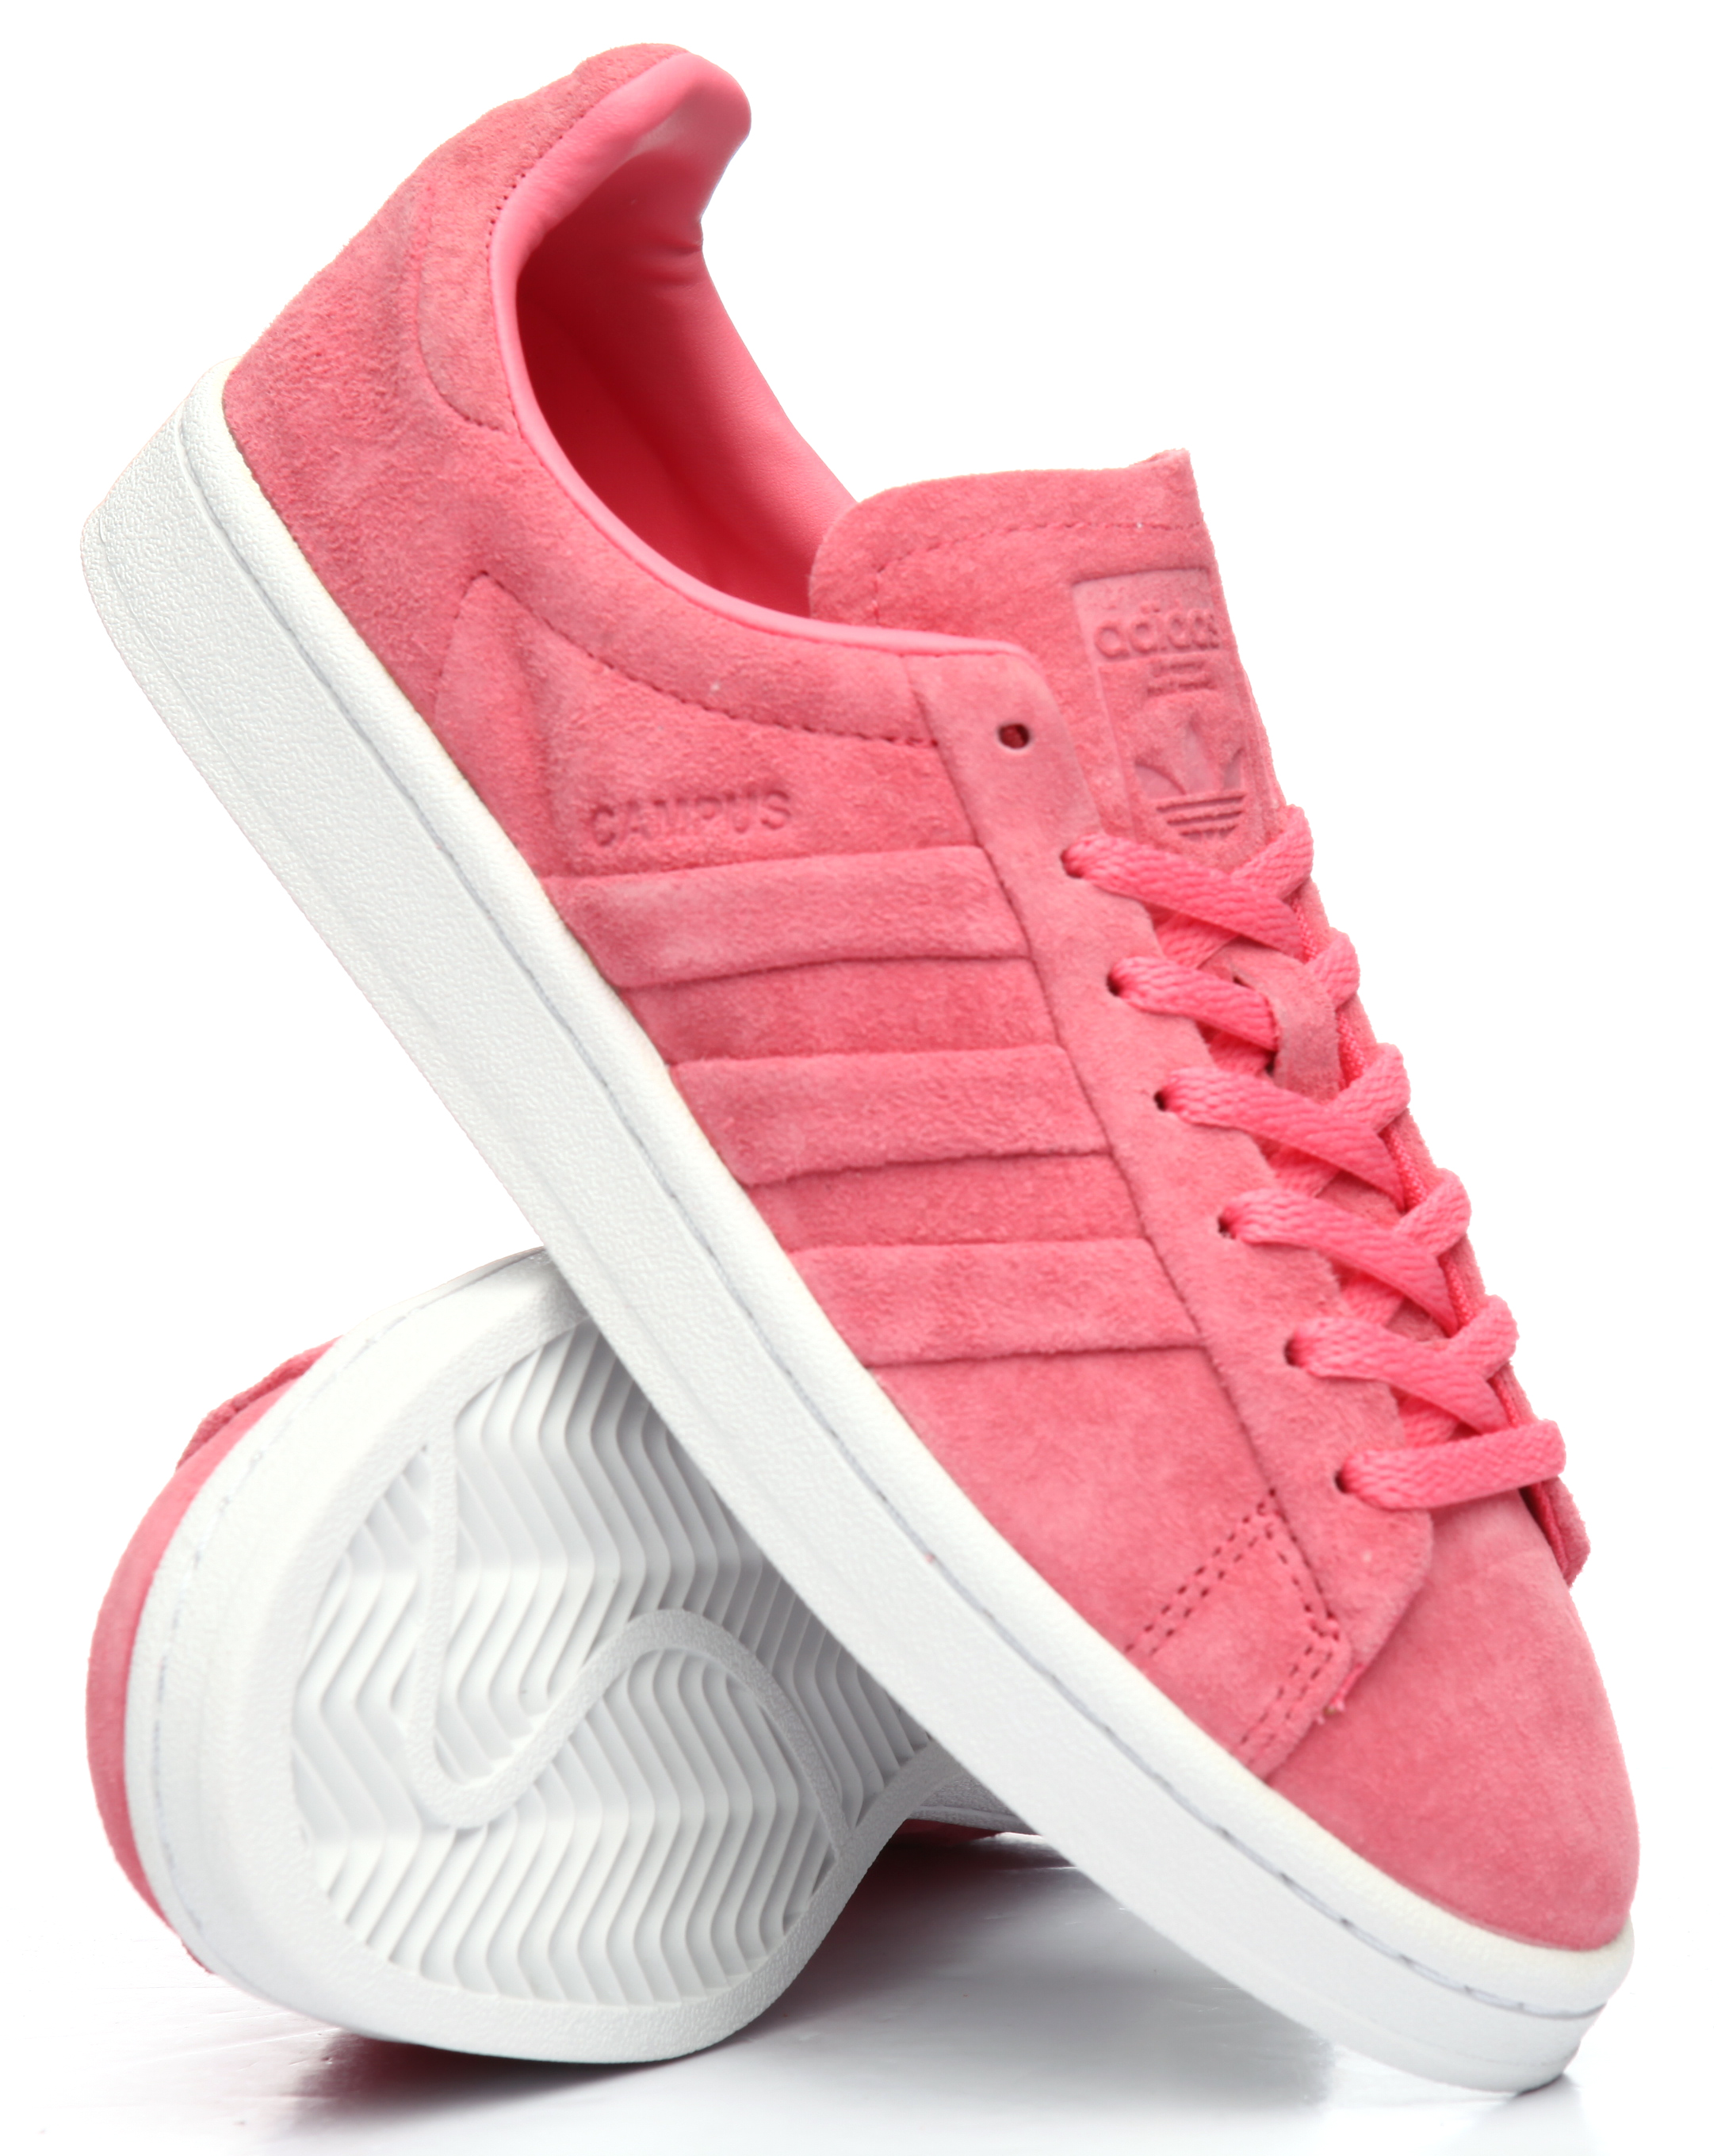 Adidas Campus Stitch And Turn Sneakers Pink